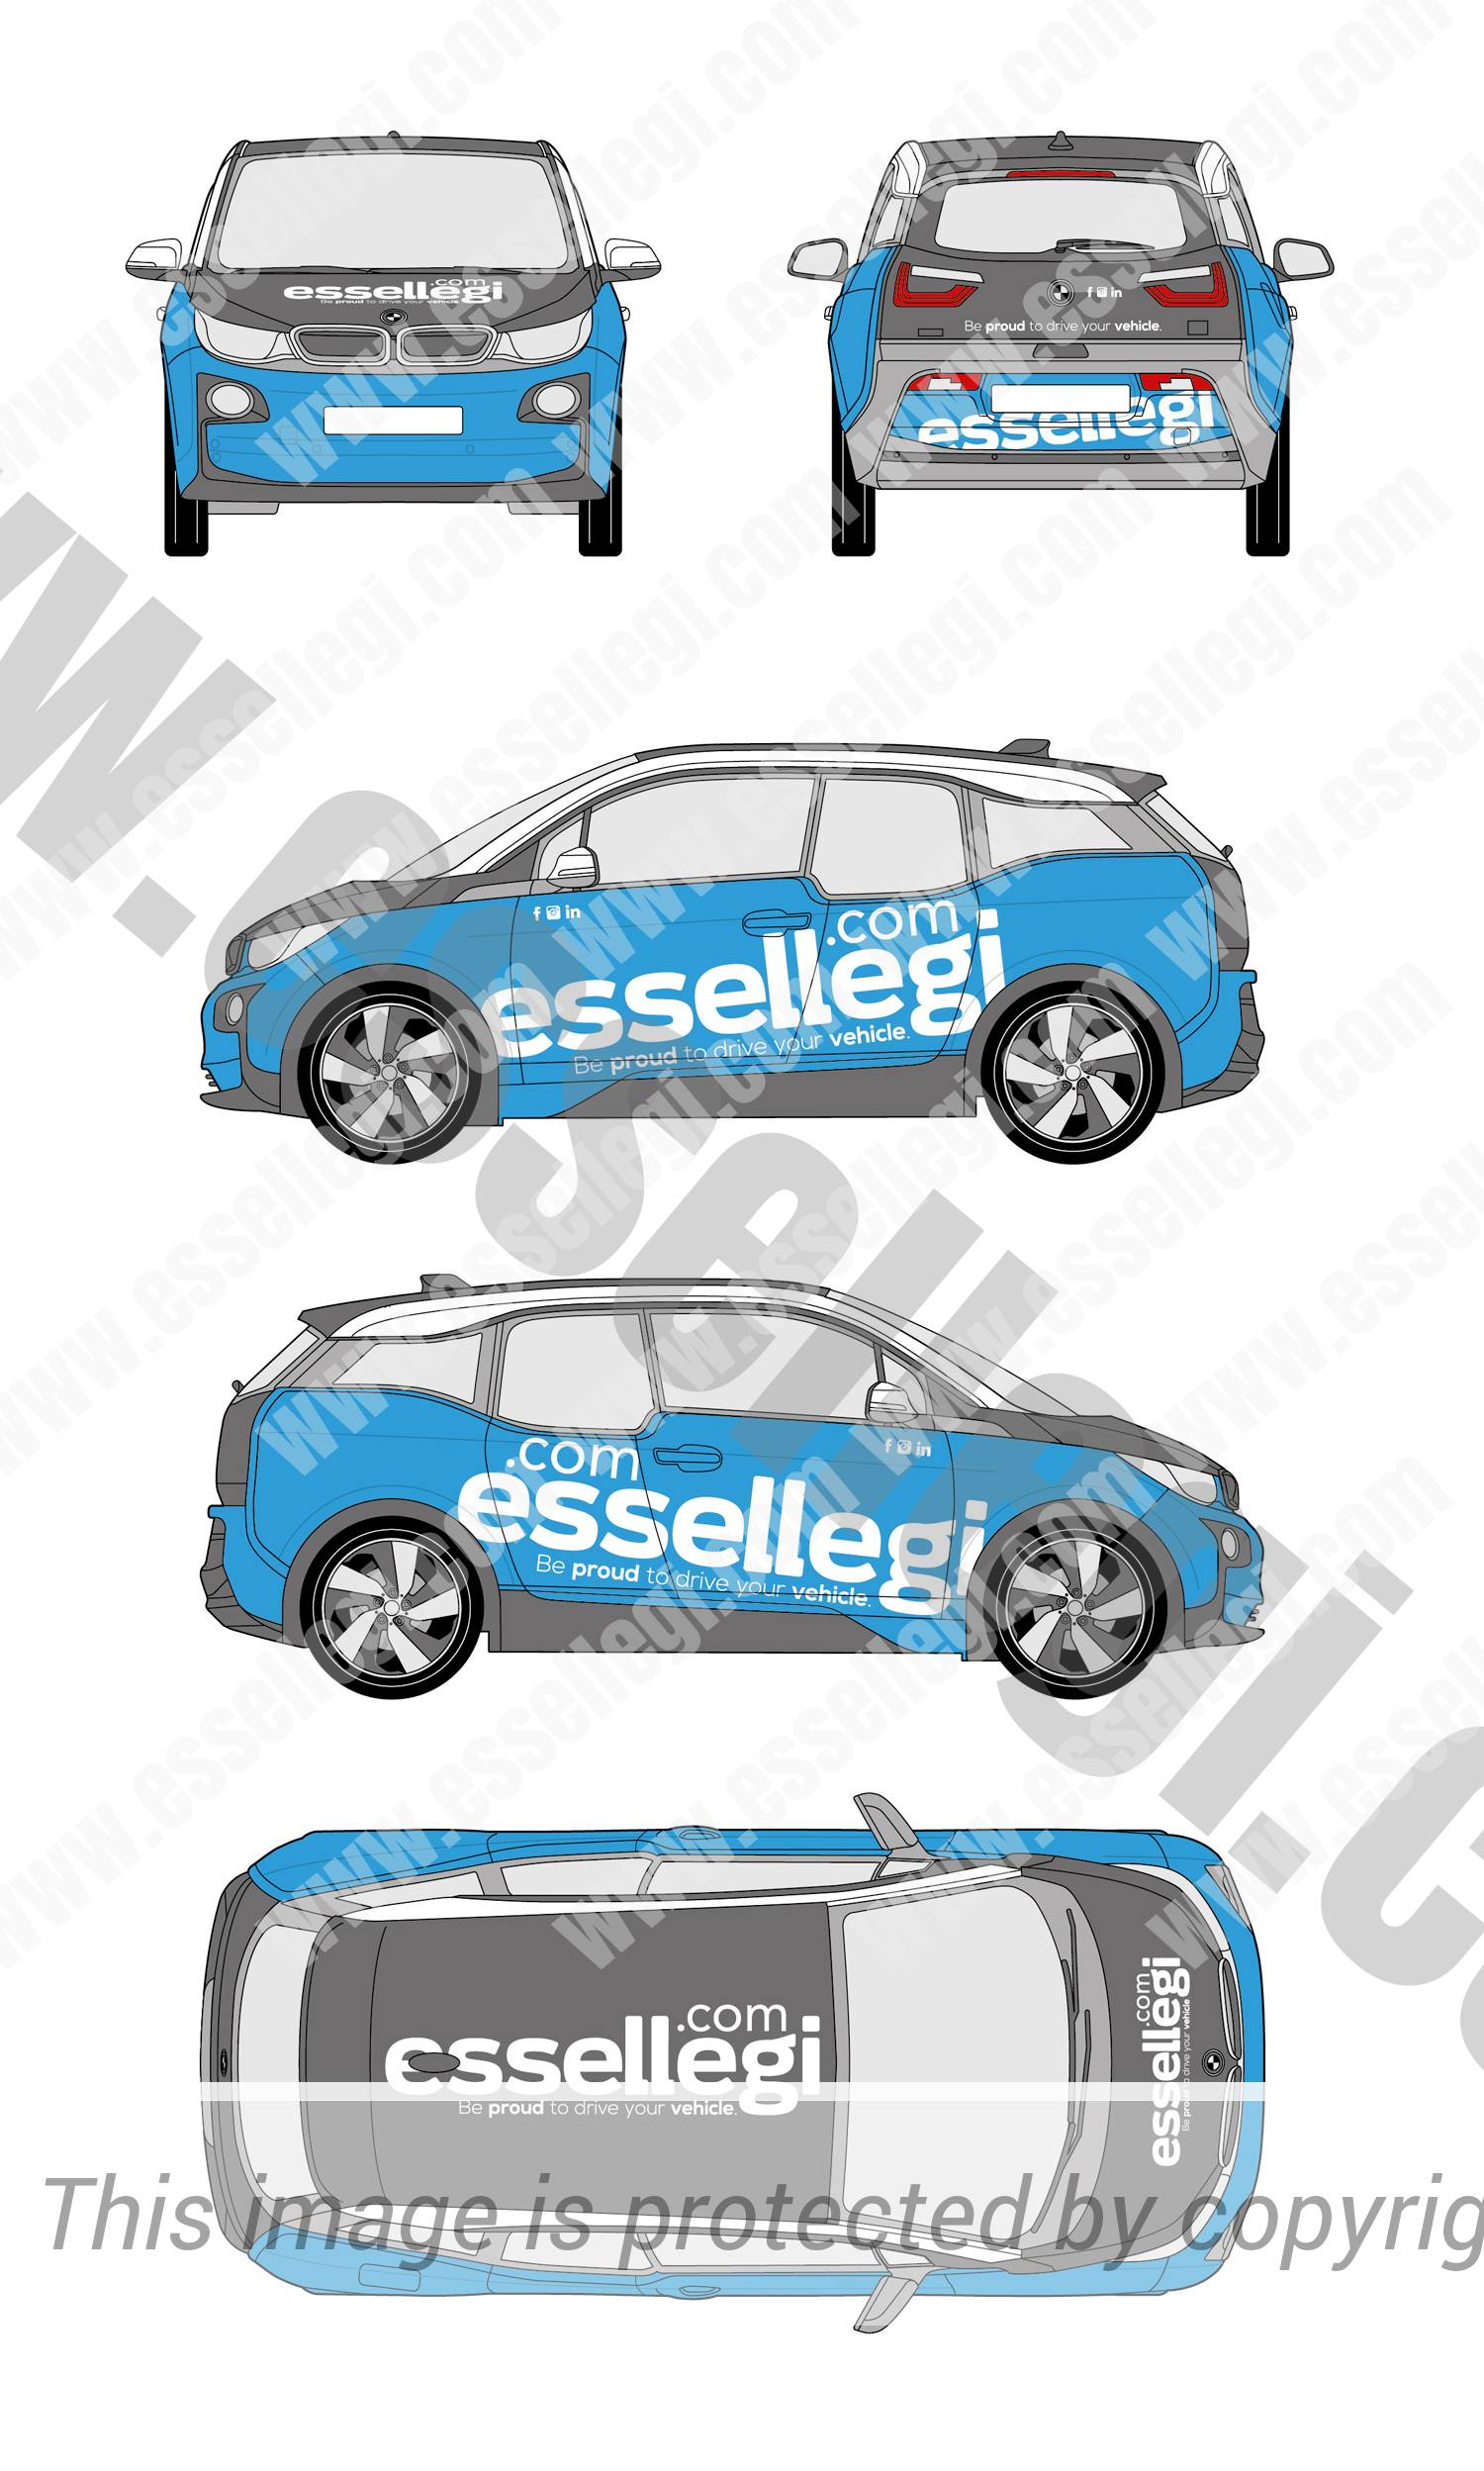 Car, Truck or Van Wrap Design by Essellegi. Van Signs, Van Signage, Van Wrapping, Van Signwriting, Van Wrap Designer, Signs for Van, Van Logo, Van Graphic, Car Signs, Car Signage, Car Signwriting, Car Wrap Designer, Car Graphic, Custom Vehicle Signage, Car Wrap Design by Essellegi.